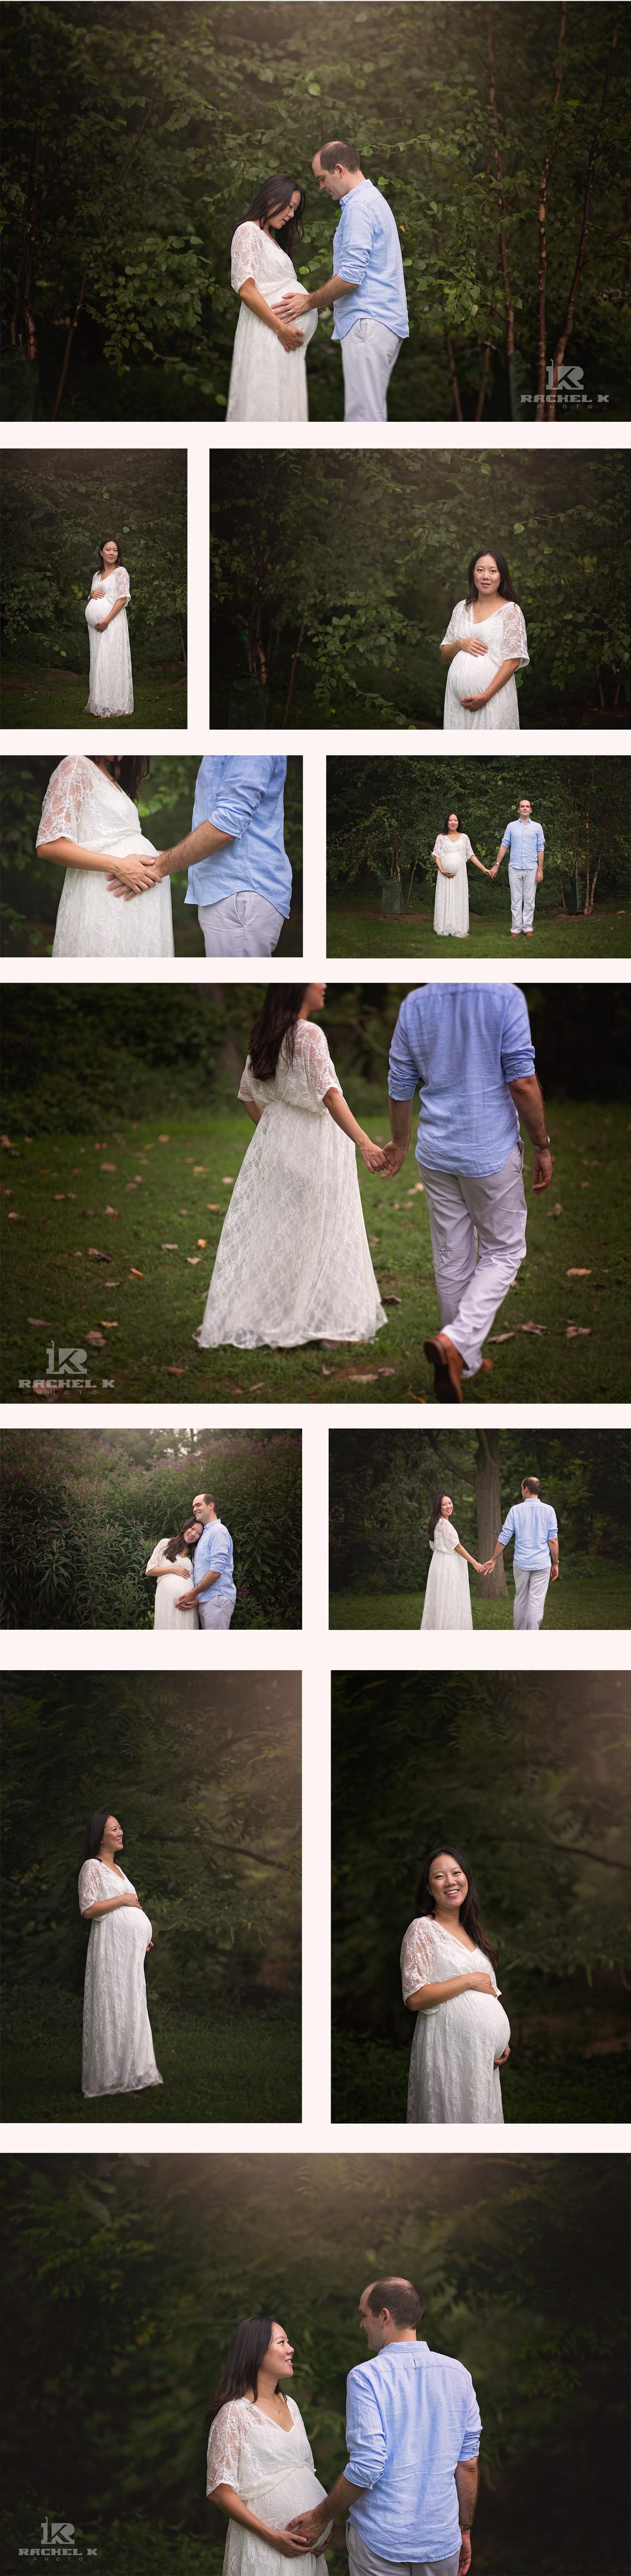 Northern Virginia maternity session by Rachel K Photo